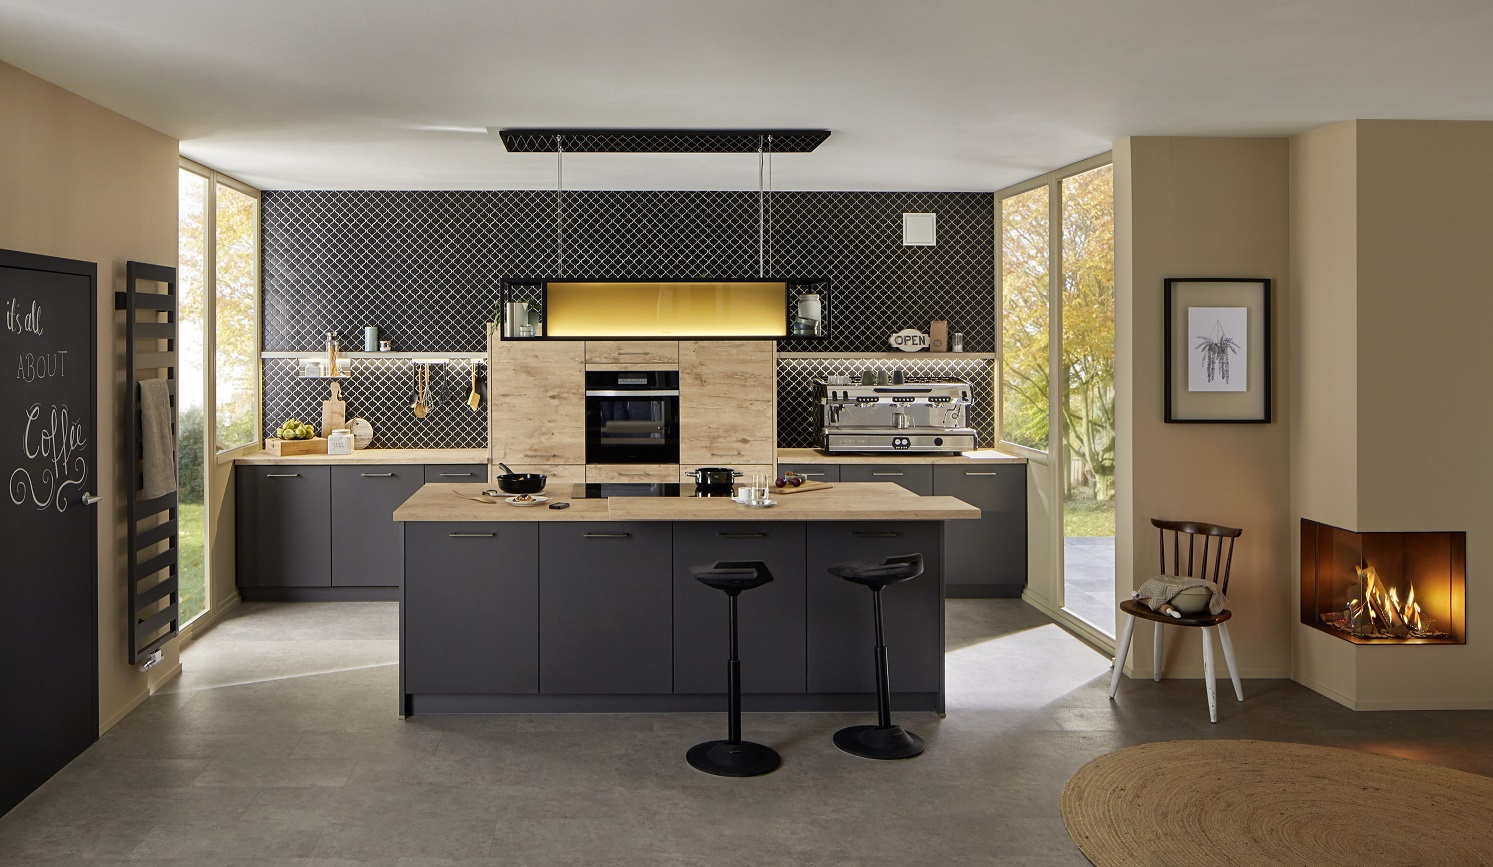 Lifestyle products with added value for the kitchen